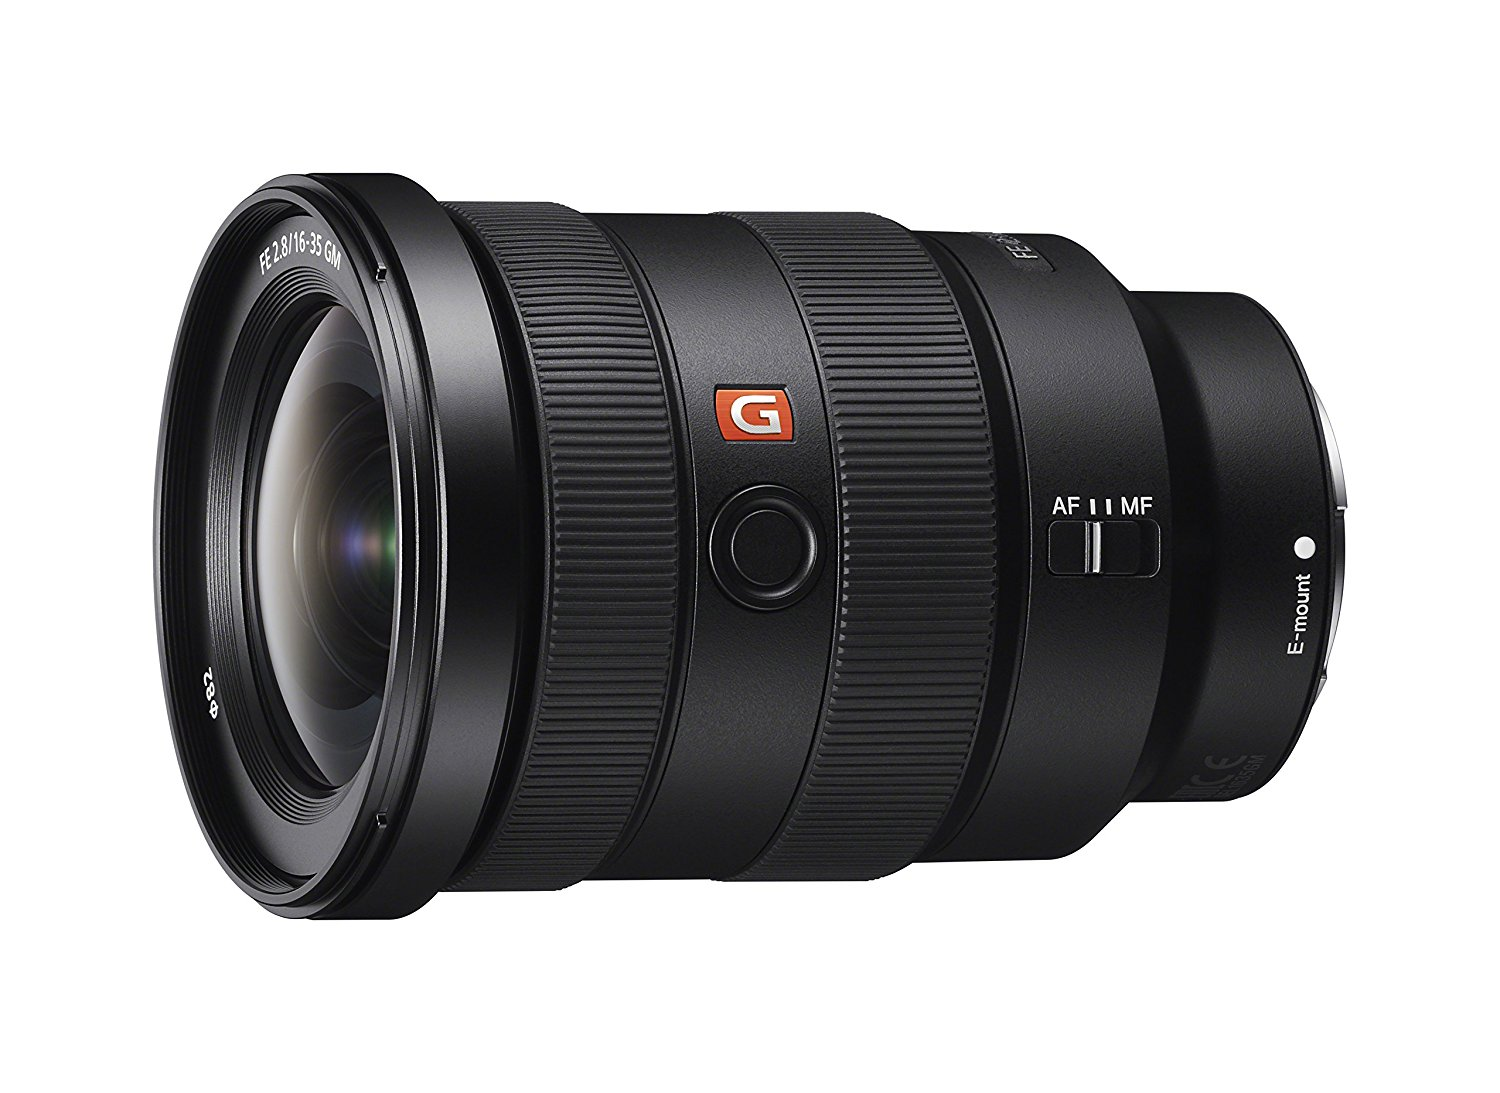 Sony 16-35mm f/2.8 GM - The Sharpest Wide Zoom